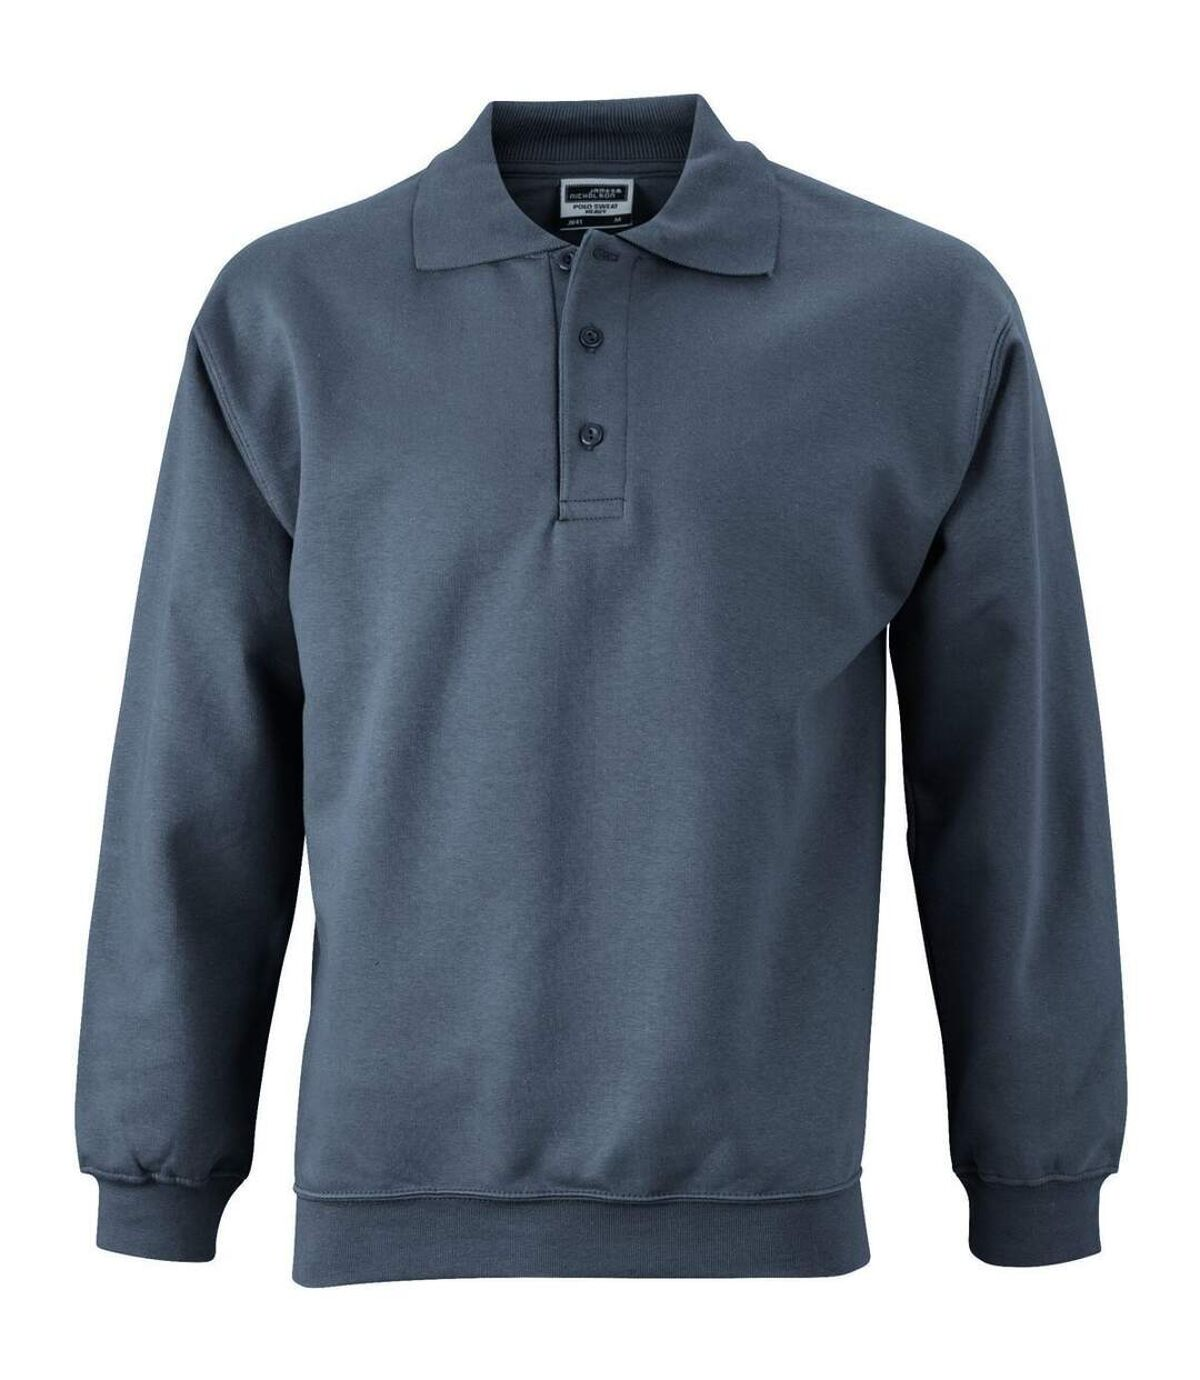 Sweat-shirt col polo - homme - JN041 - gris carbone